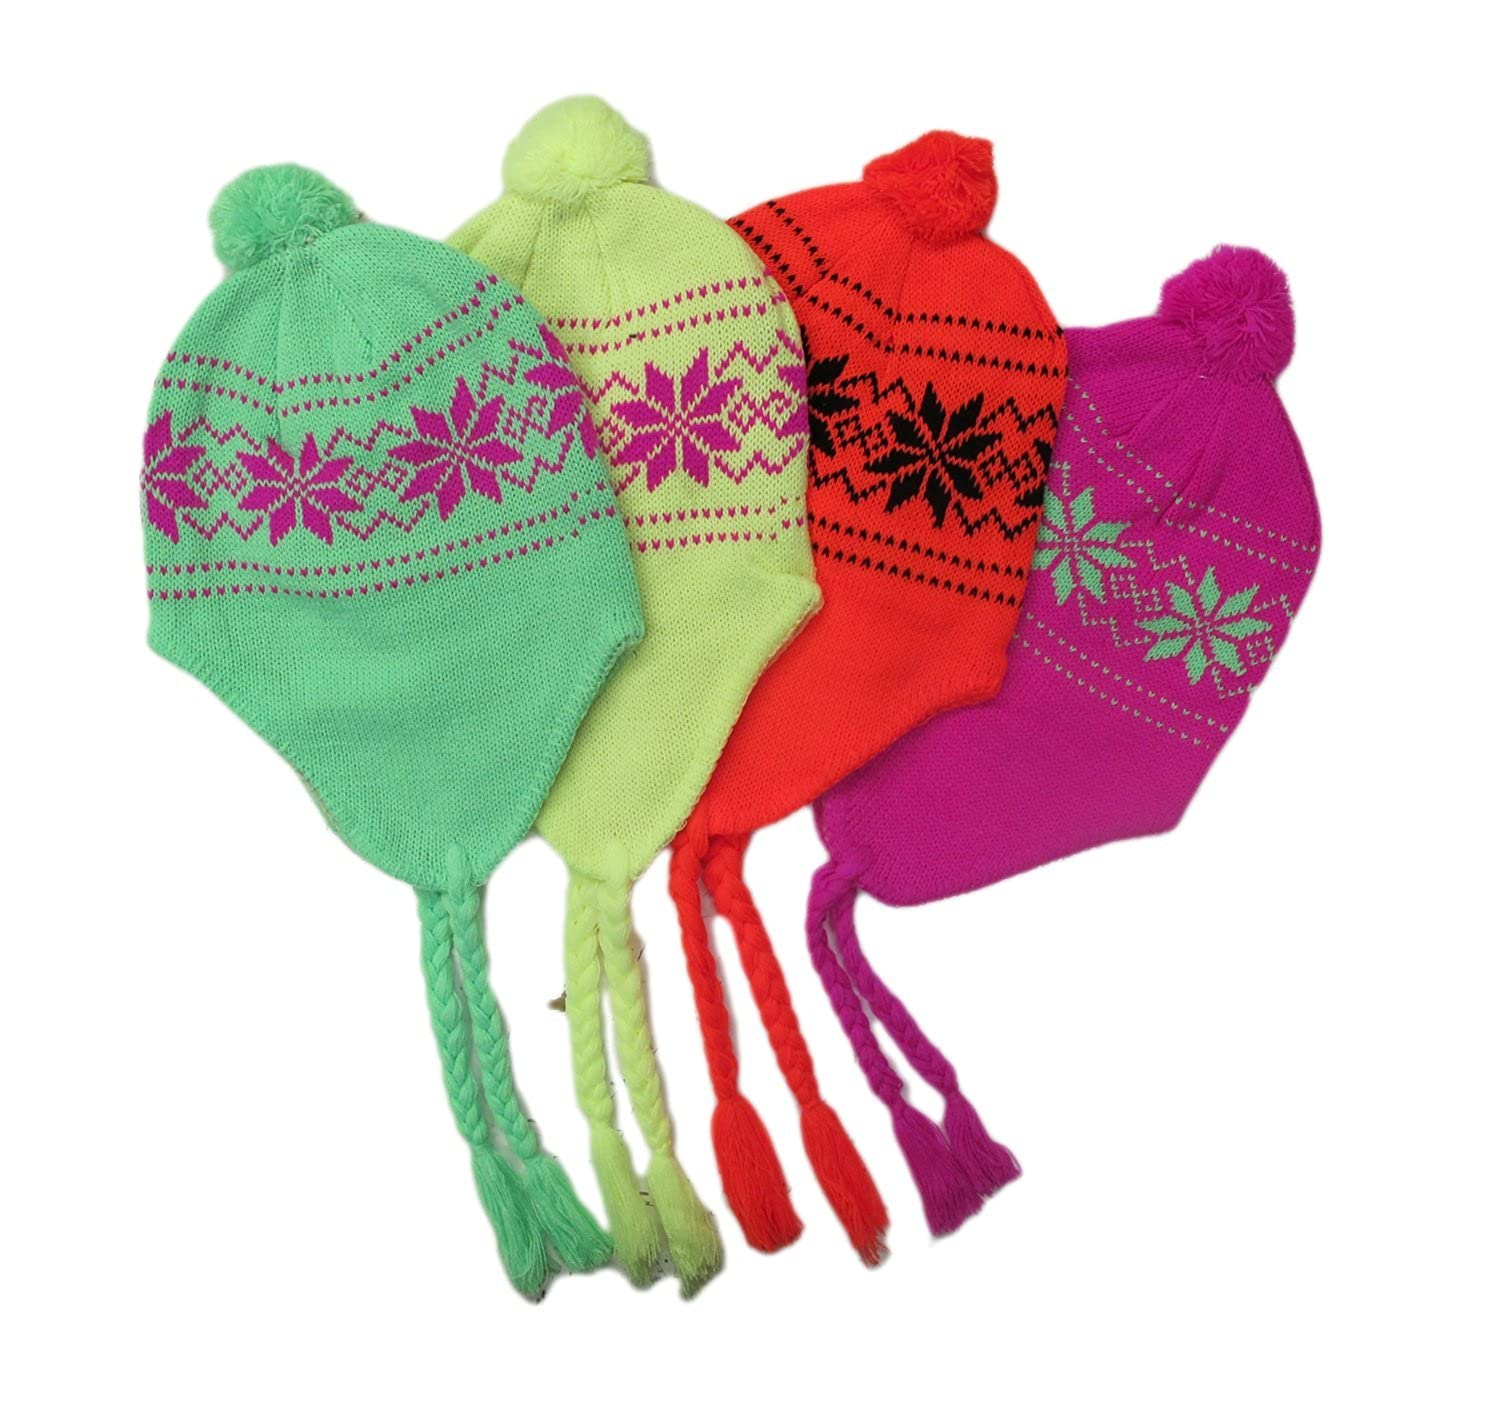 Beanie Ear-flap Hats, with Soft Warm Lining, Neon, Argyle or Snowflake, 4 Pack